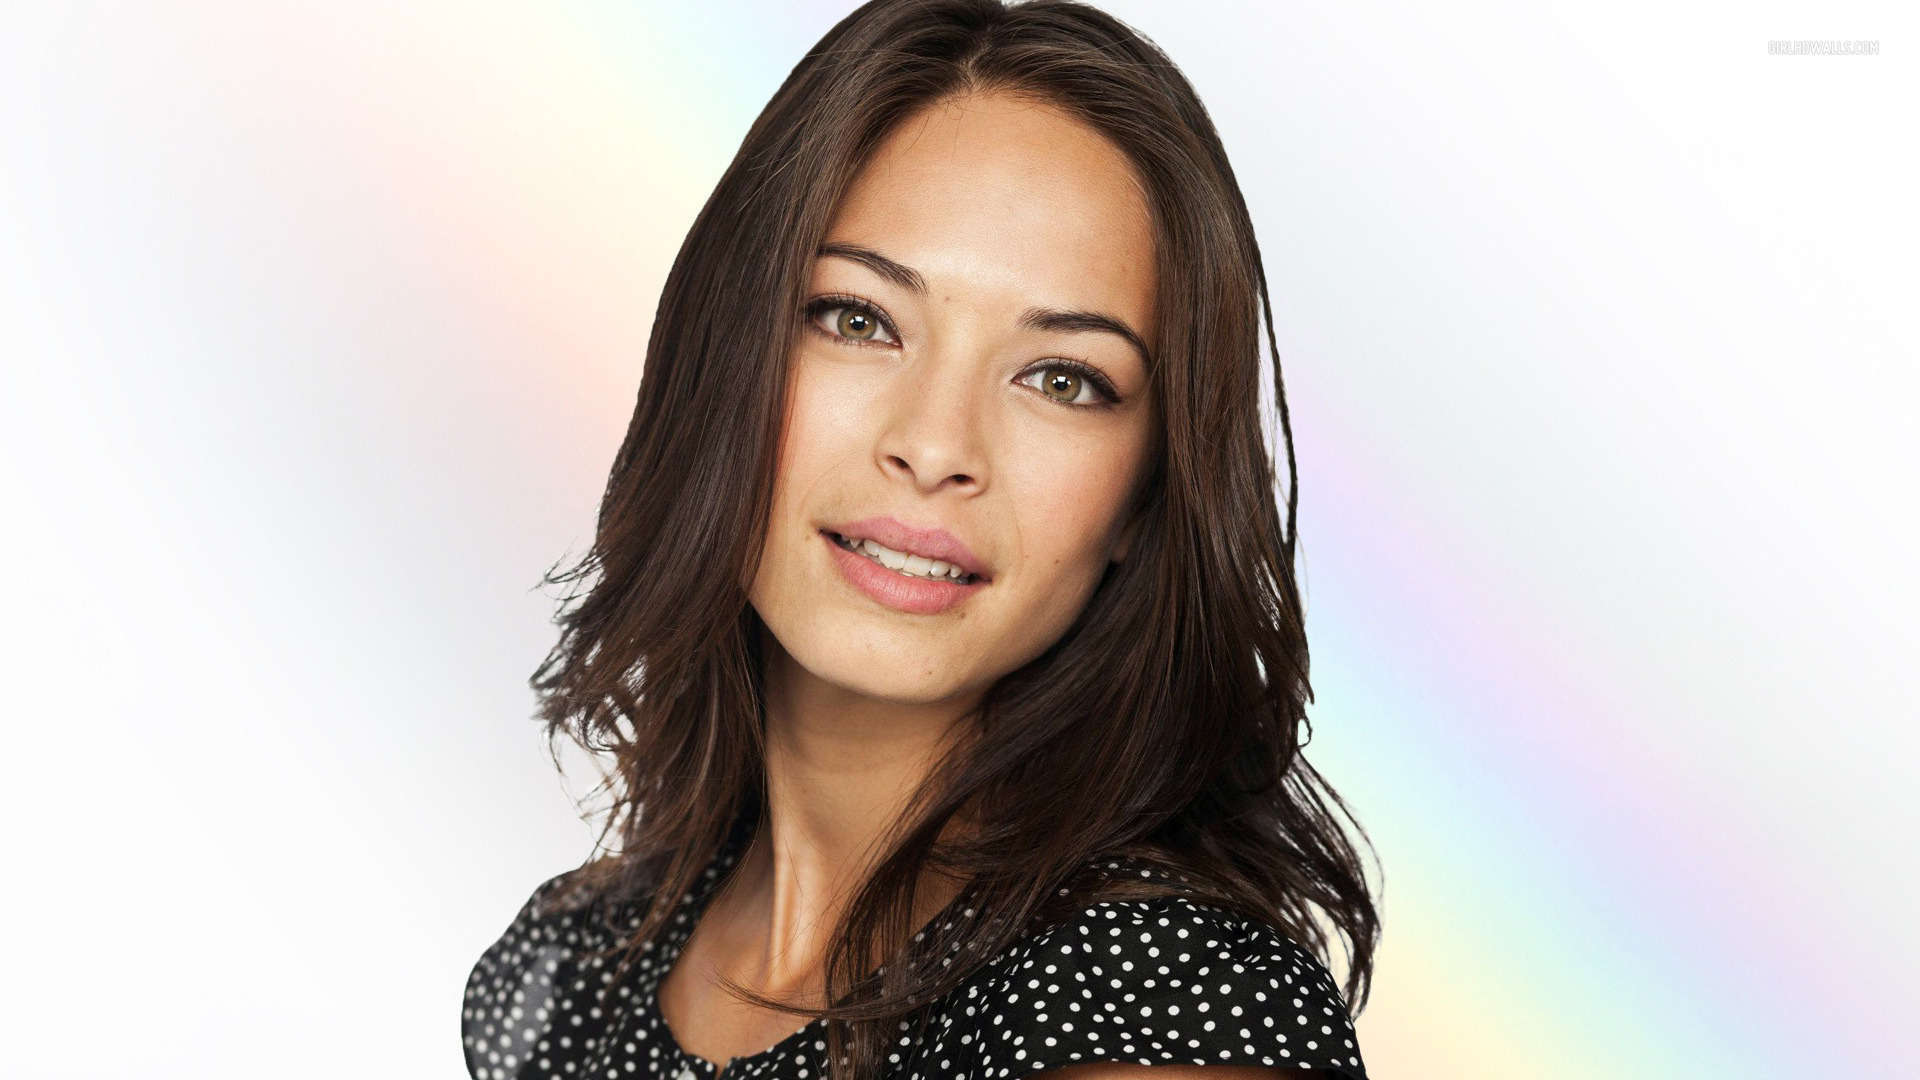 Kristin Kreuk Wallpapers Images Photos Pictures Backgrounds